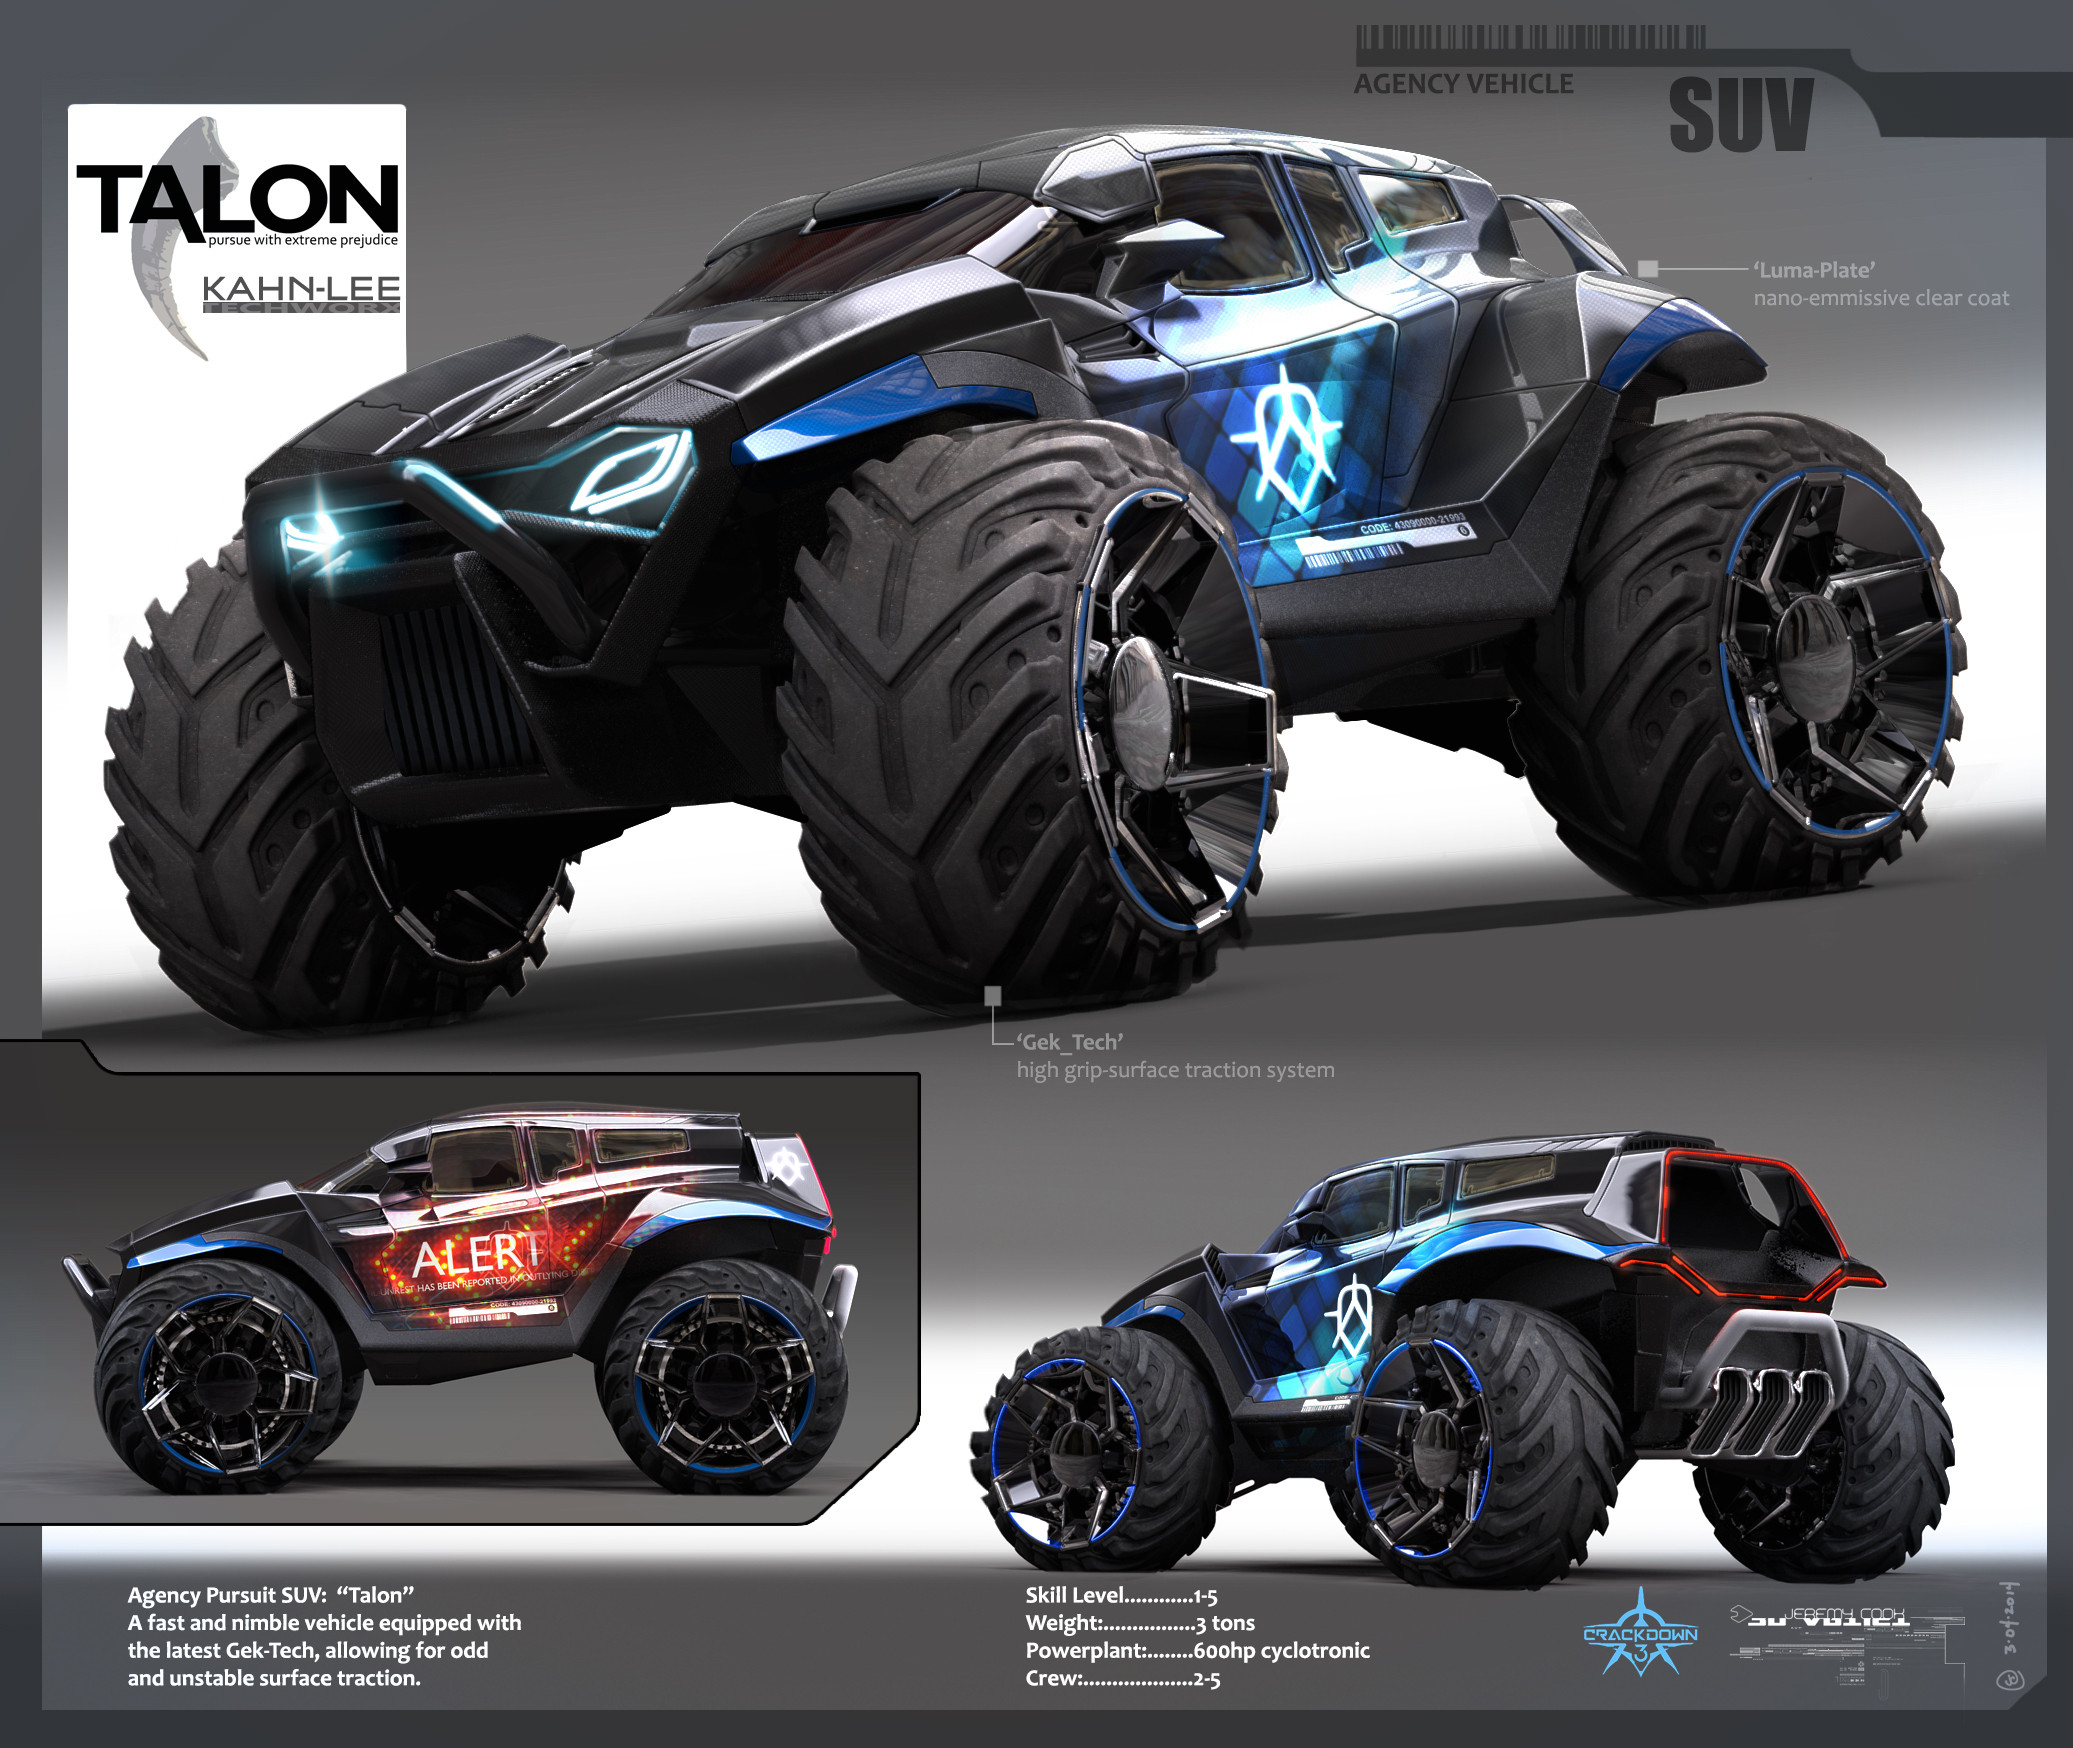 Early concept for Agent SUV